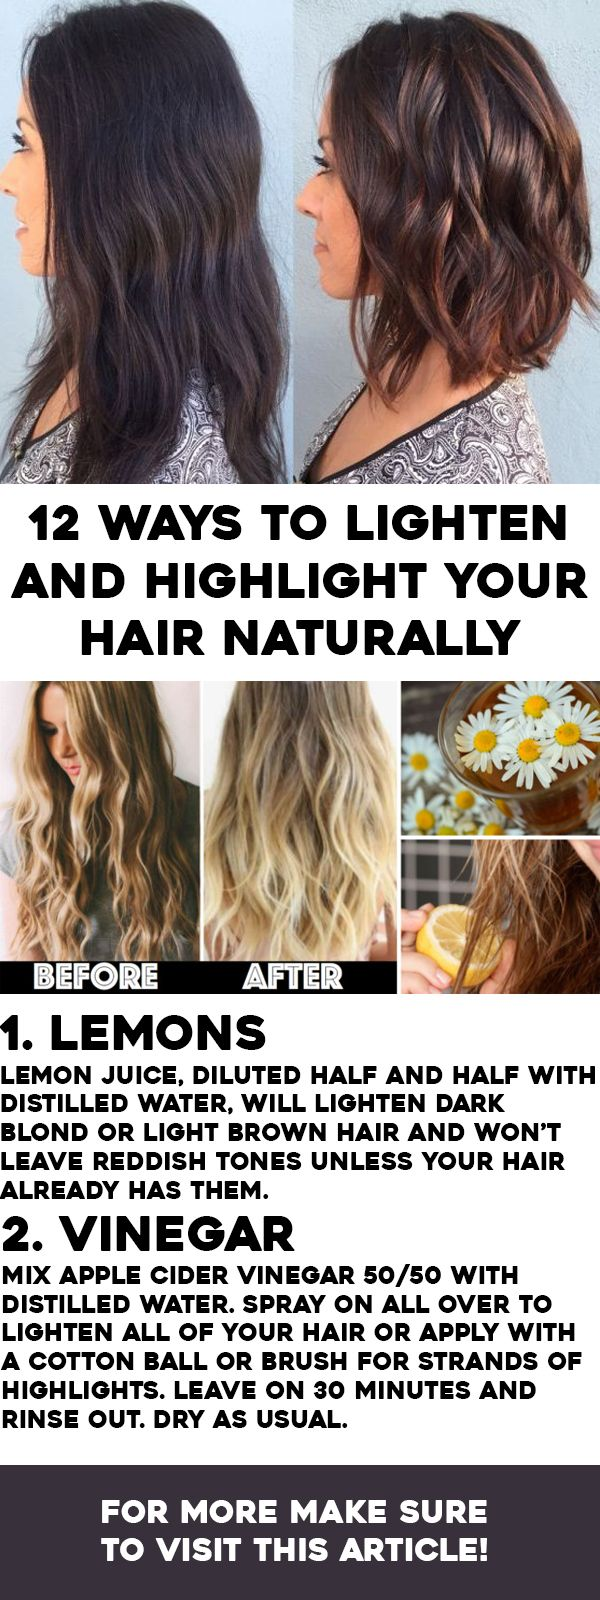 How To Lighten Hair Naturally And Add Highlights 1 Lemons Lemon